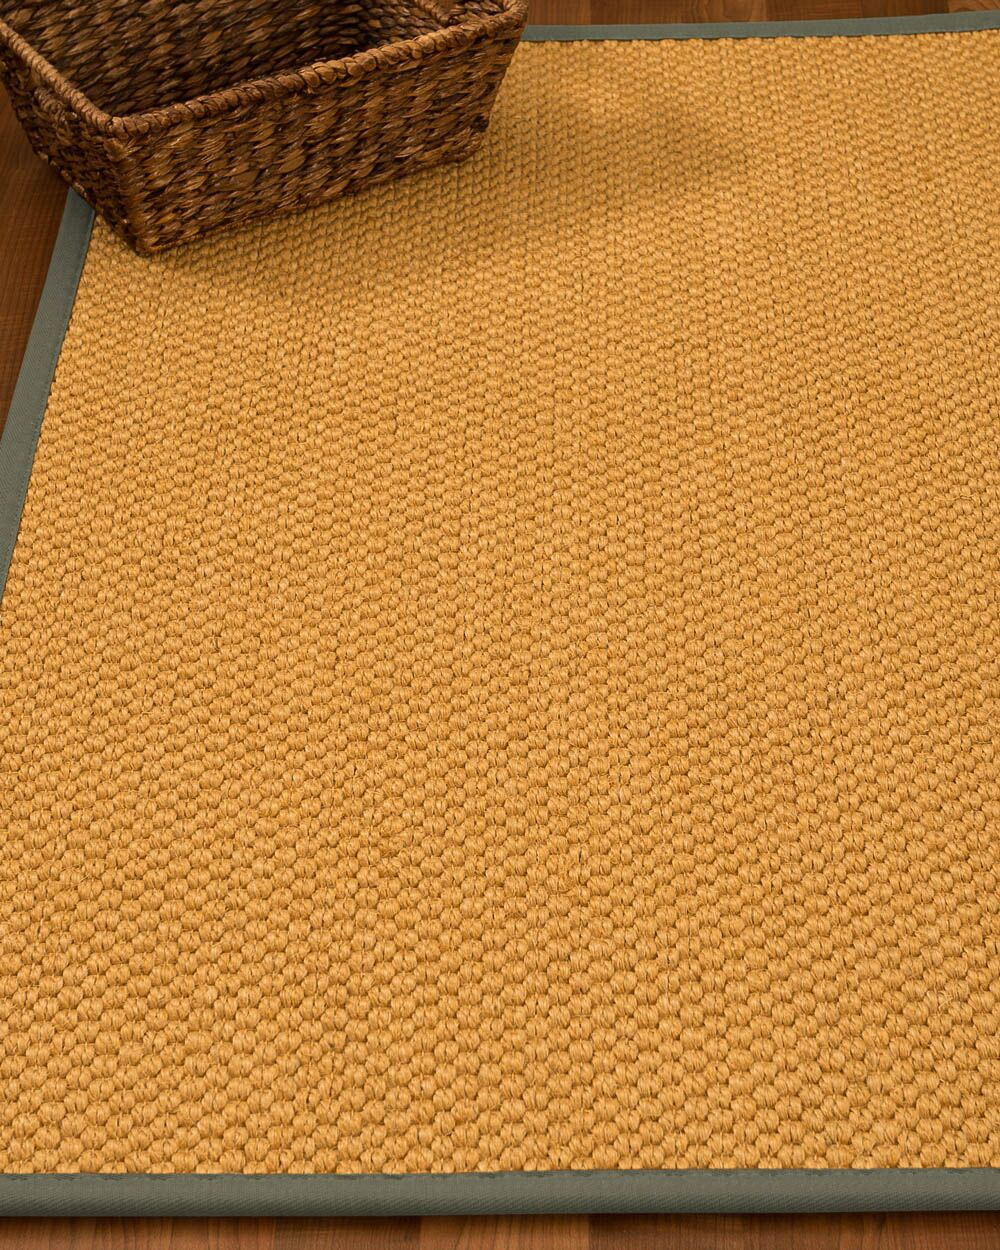 Kimes Hand-Woven Beige Area Rug Rug Size: Runner 2'5